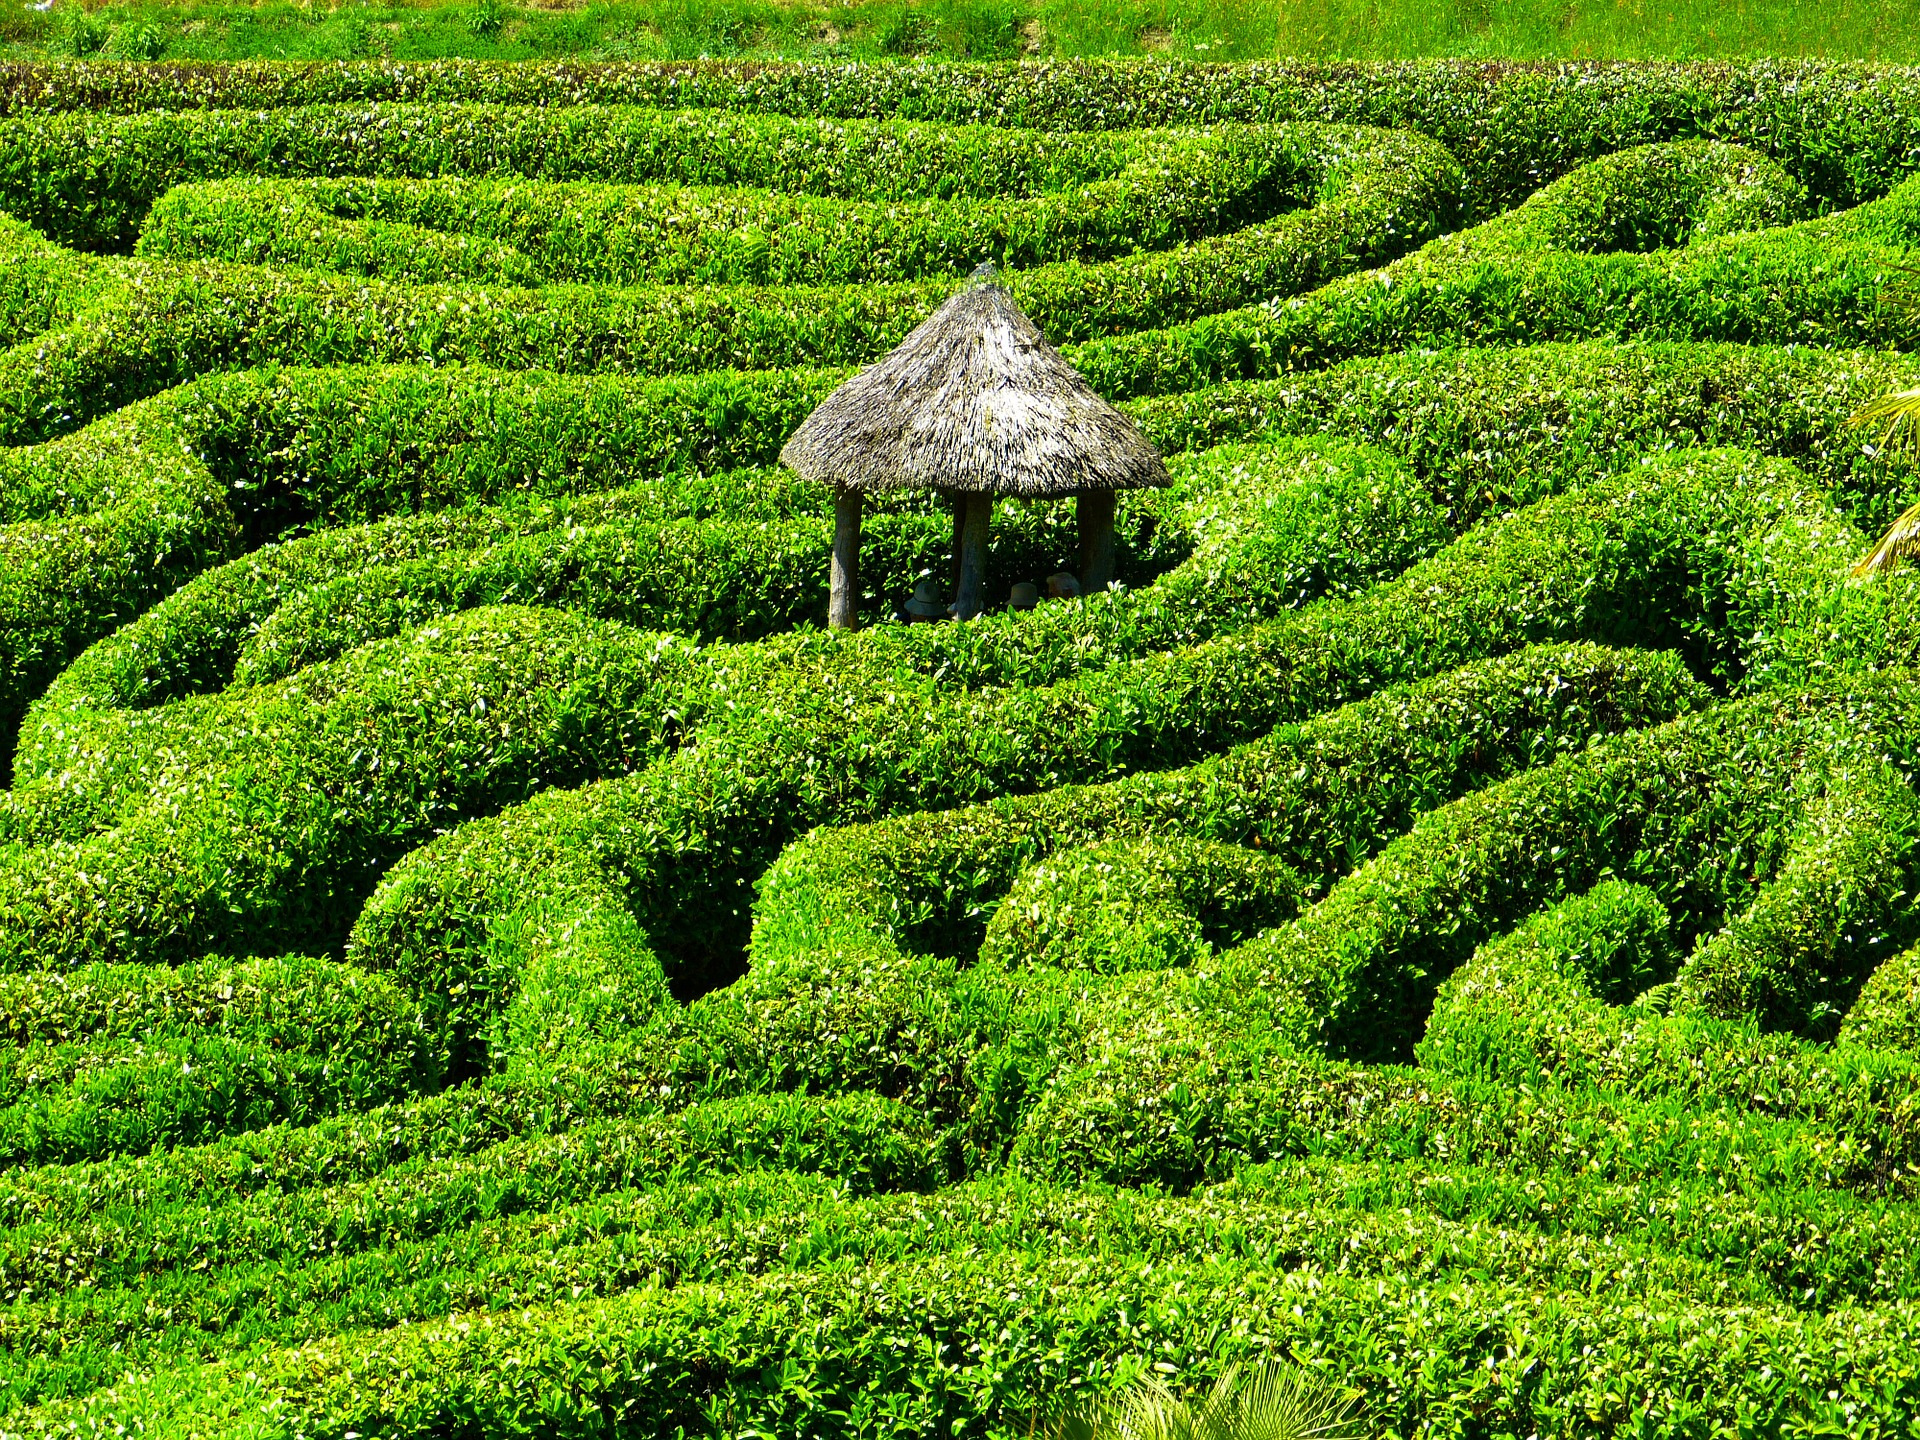 Without making your company purpose clear to your employees, you are no better off than a large company... your team will feel as if they are navigating a maze, unsure of where to turn and uncertain of how close they are to their goal.